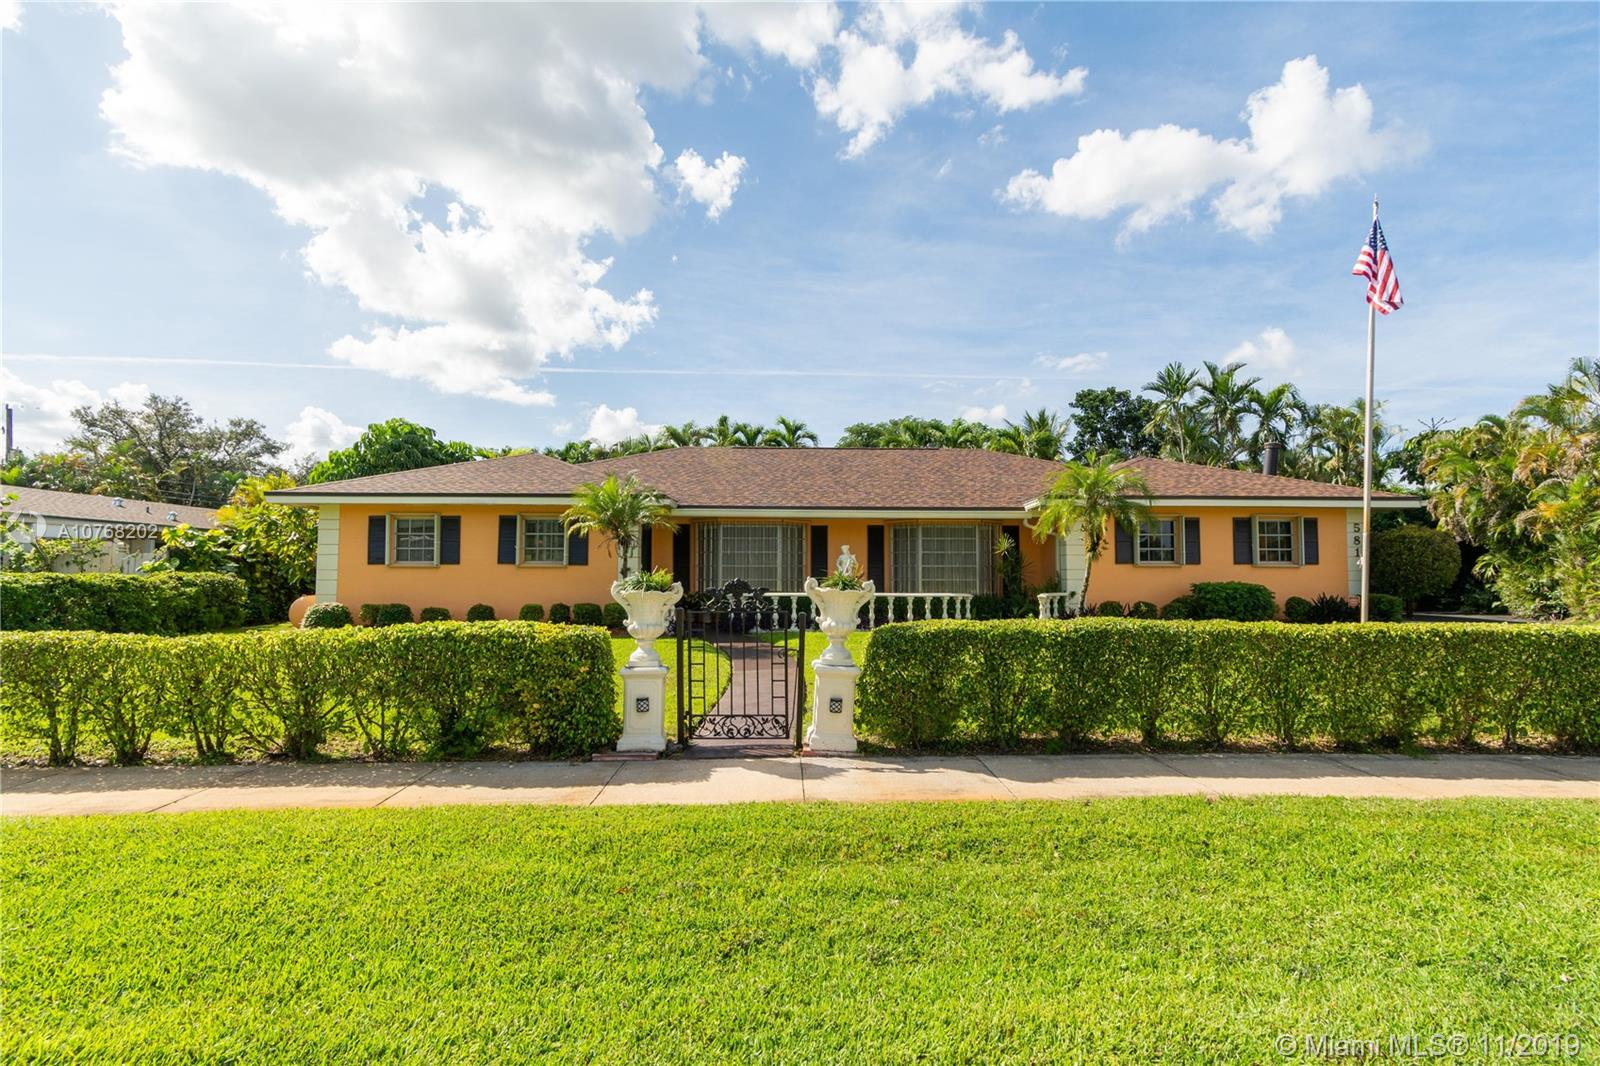 581 NW 75th Ave, Plantation, FL 33317